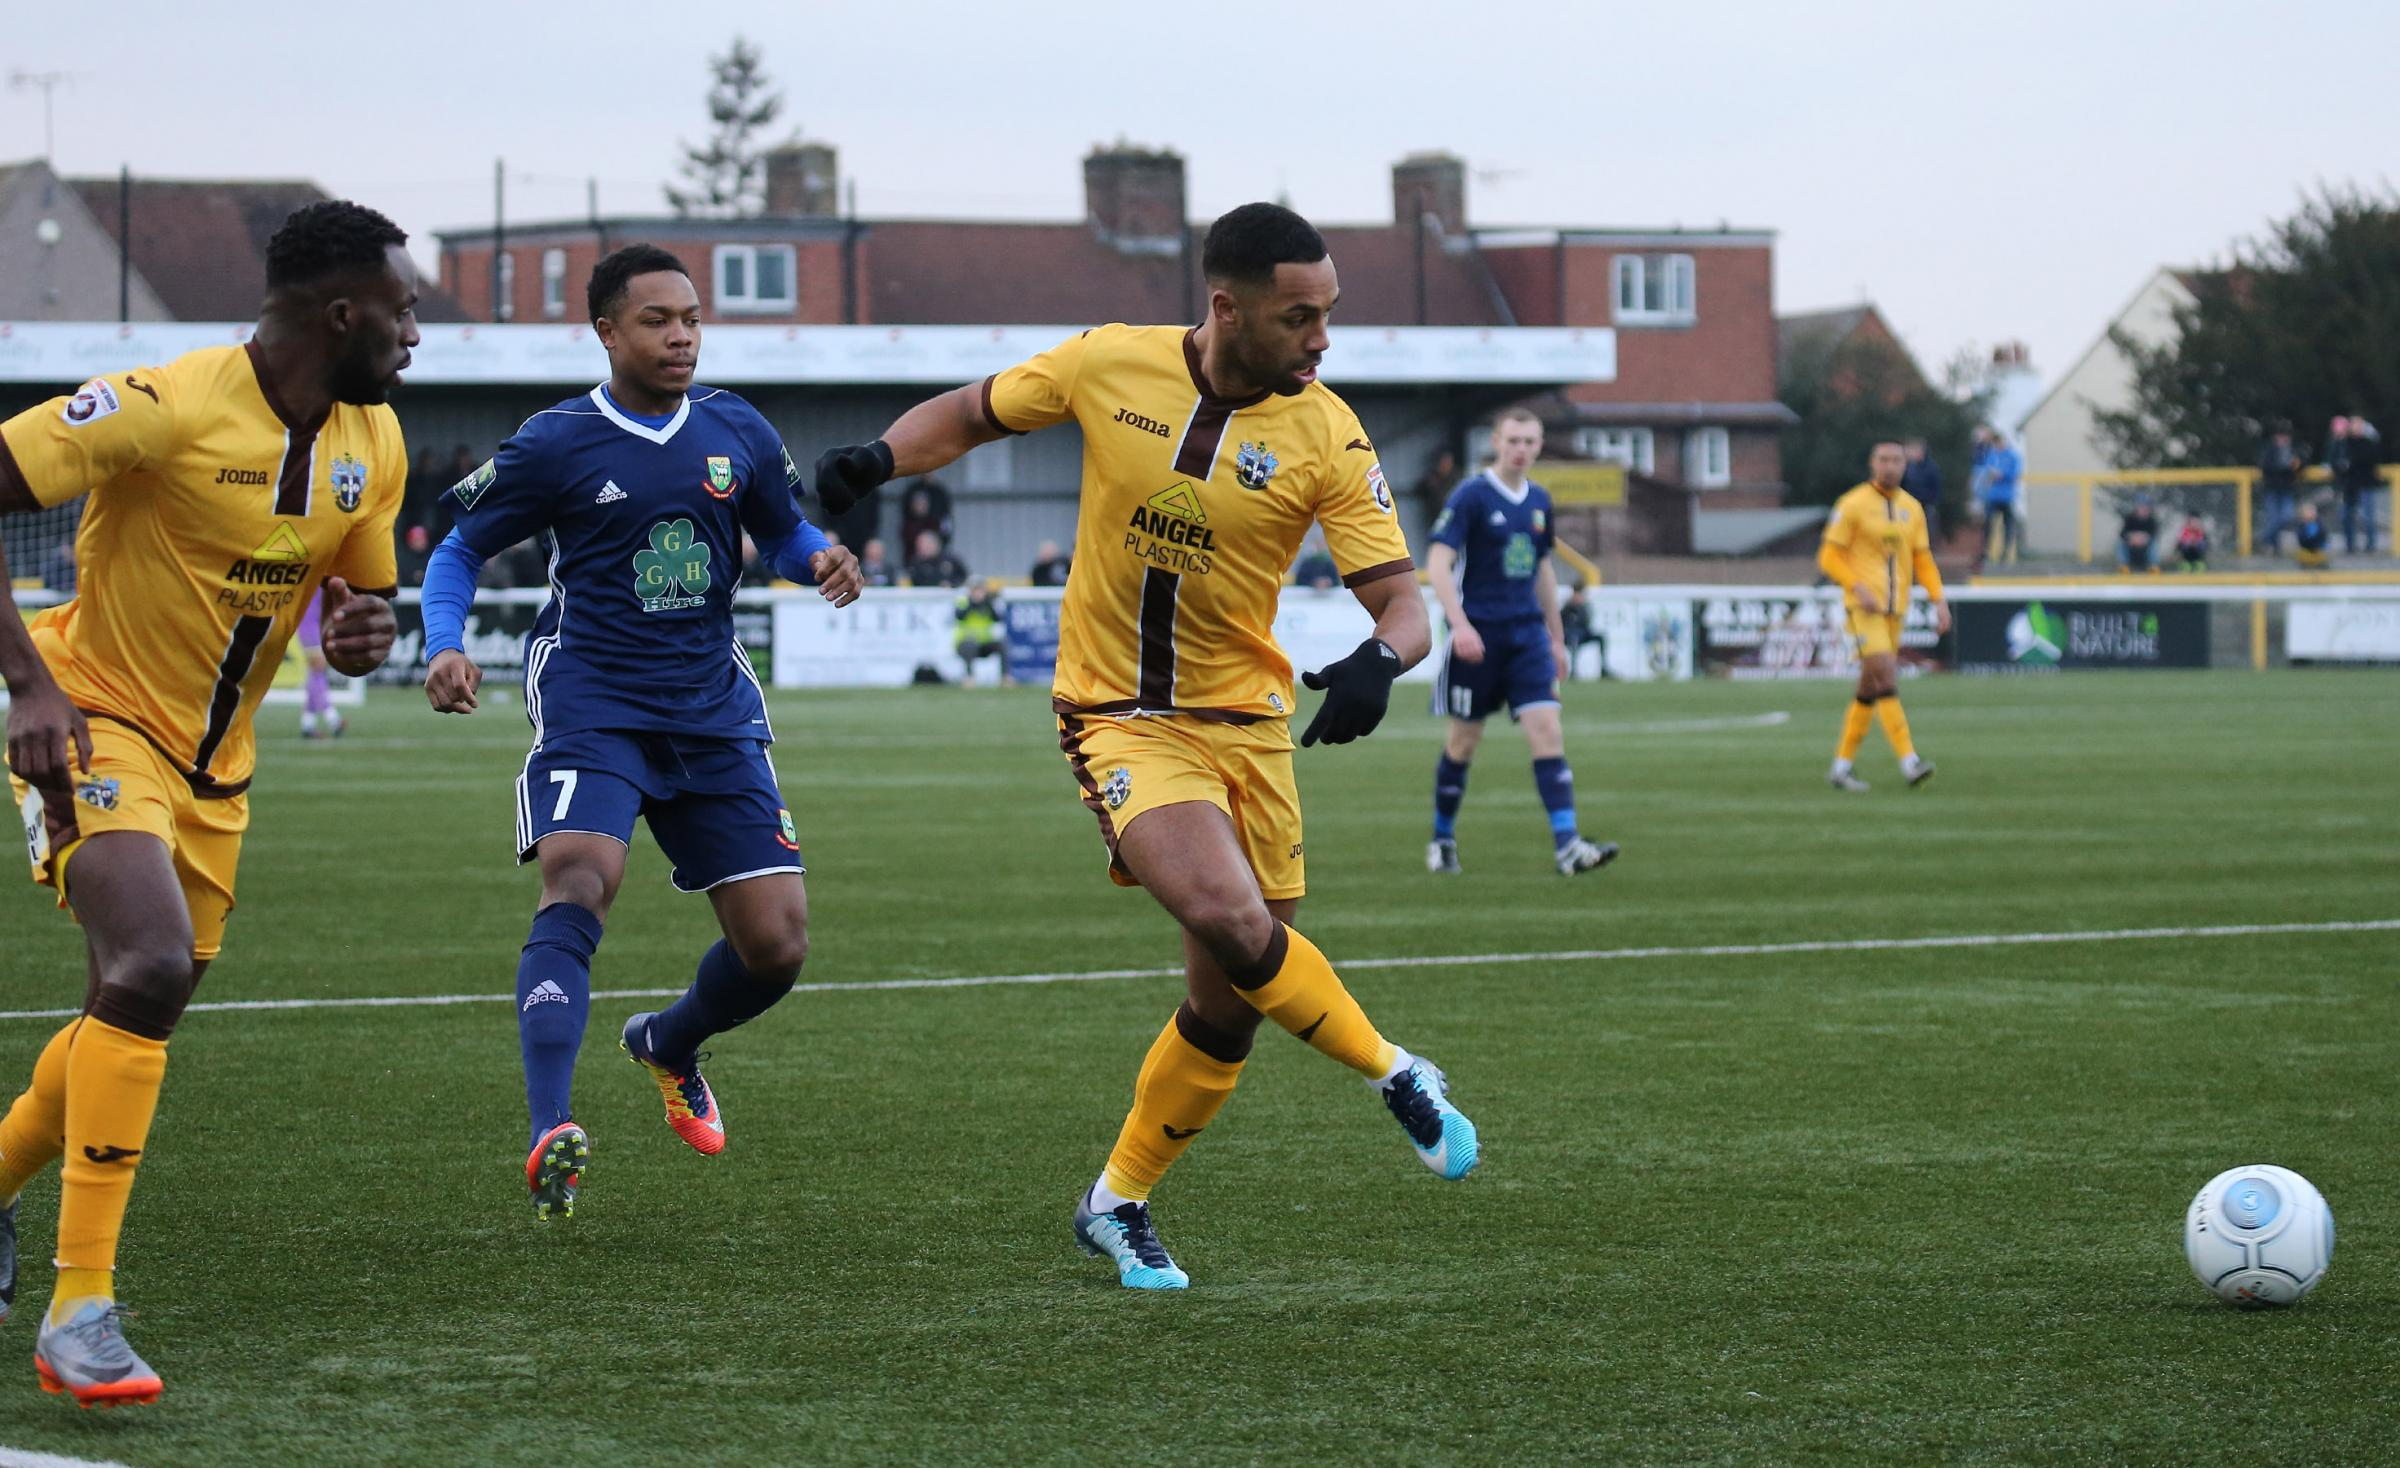 Adam Coombes scored a stunning second goal for Sutton United against Hendon on Saturday. Picture: Paul Loughlin